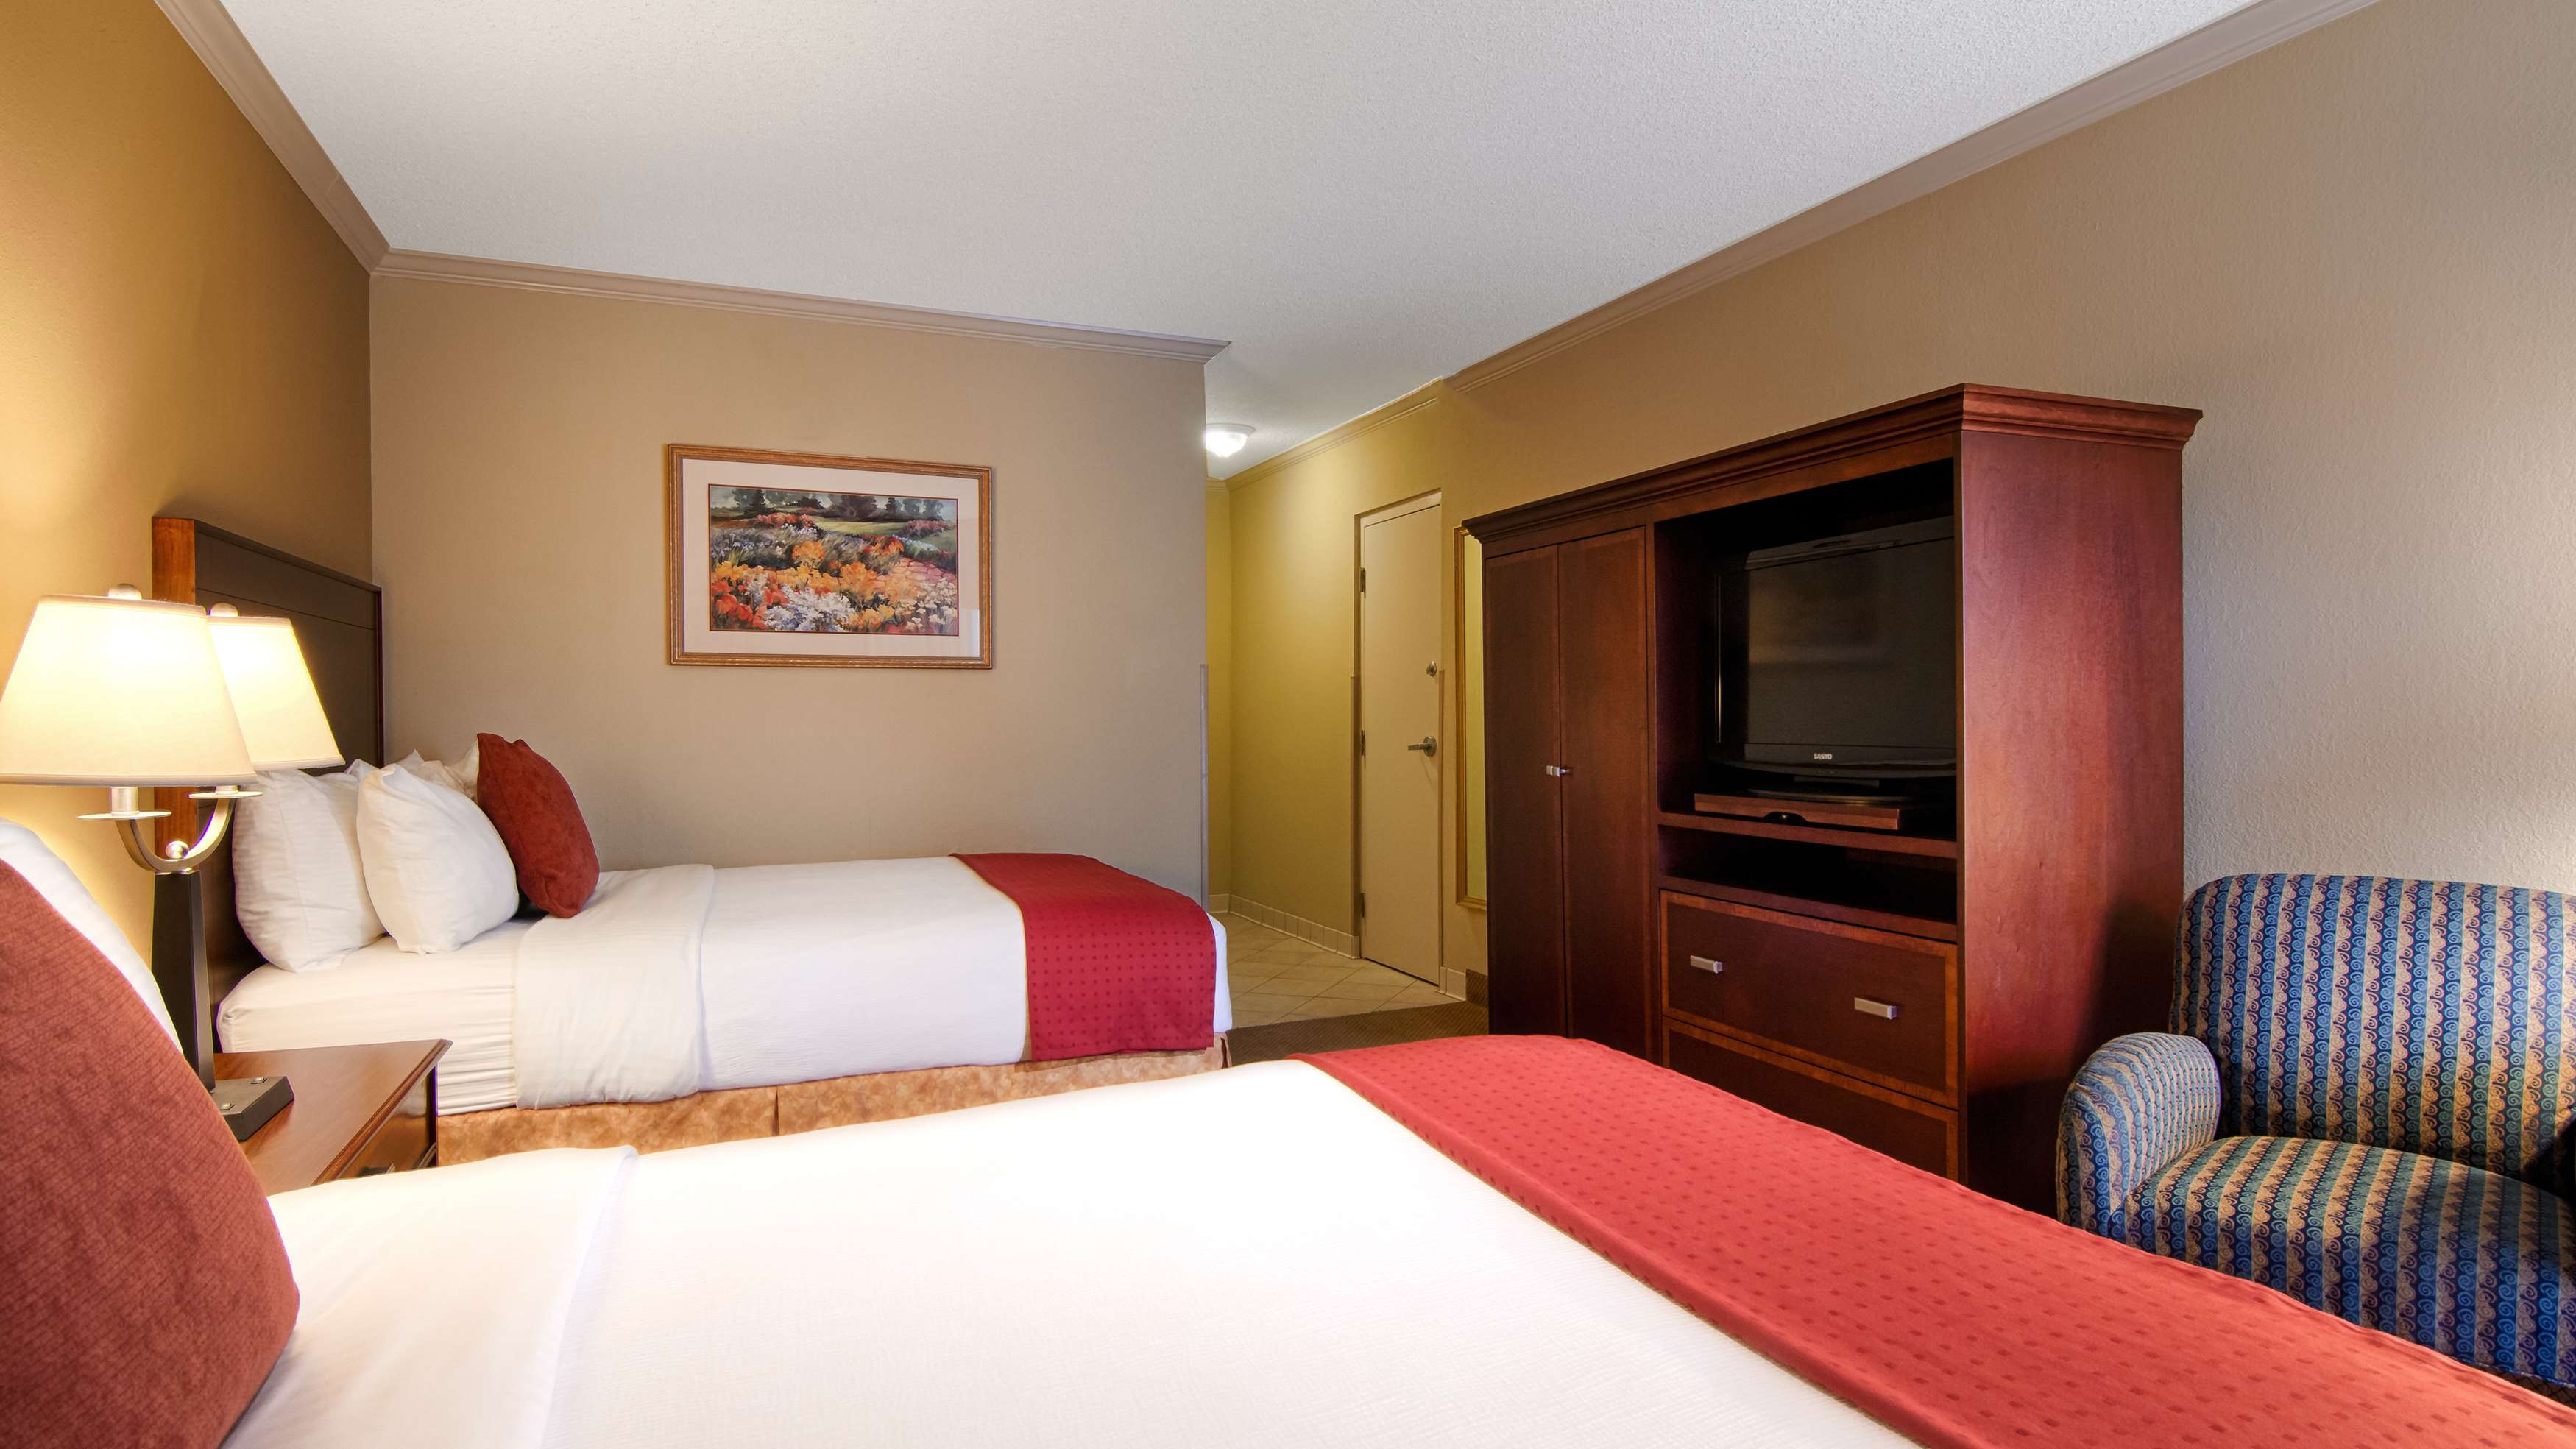 Best Western Plus Morristown Conference Center Hotel image 23